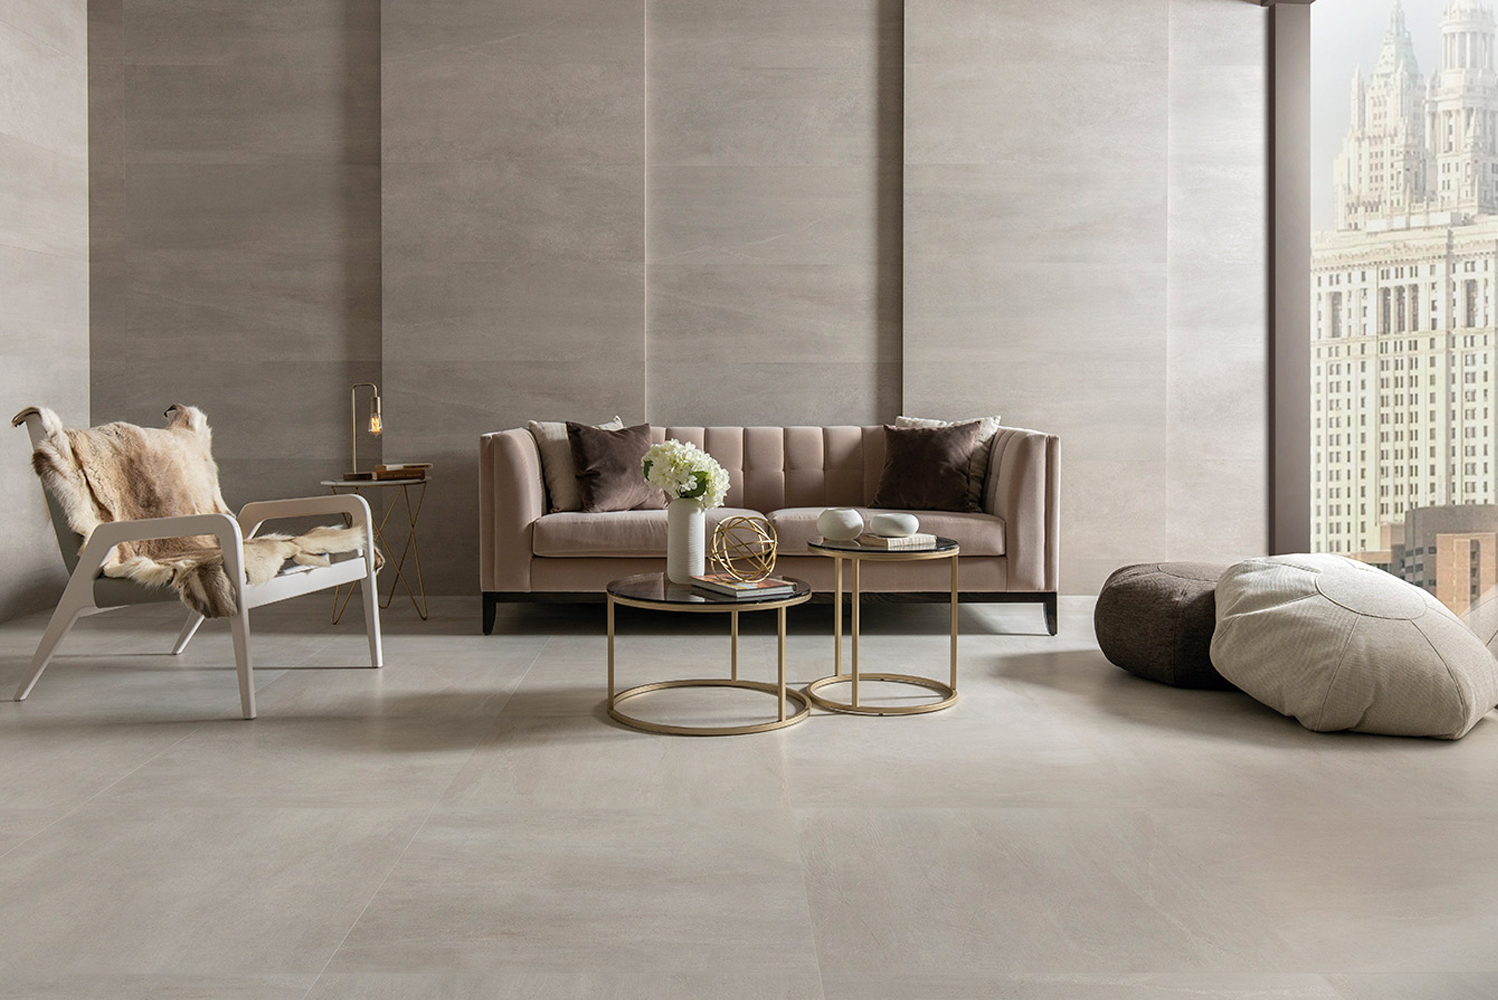 Introducing the Urban collection by Porcelanosa, a line of floor and wall tiles featuring stone-origin veining.